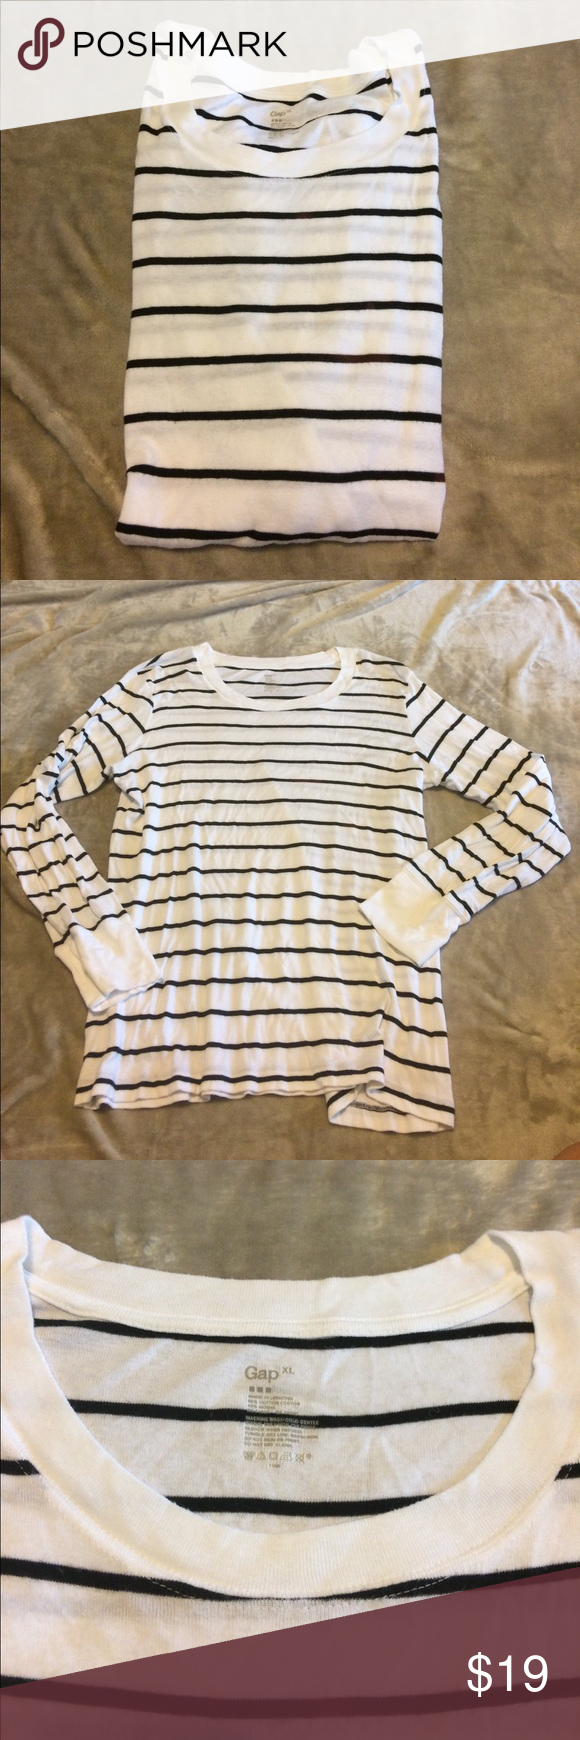 Gap Pullover Knit Top Black White Stripes XL EUC Basic striped knot top by Gap.  Excellent condition.  XL. Black & White. Chest 21 inches flat. Length 27 inches from shoulder seam to bottom. Sleeve 24 inches from shoulder seam to bottom. I love to bundle. Bin Z GAP Tops Tees - Long Sleeve